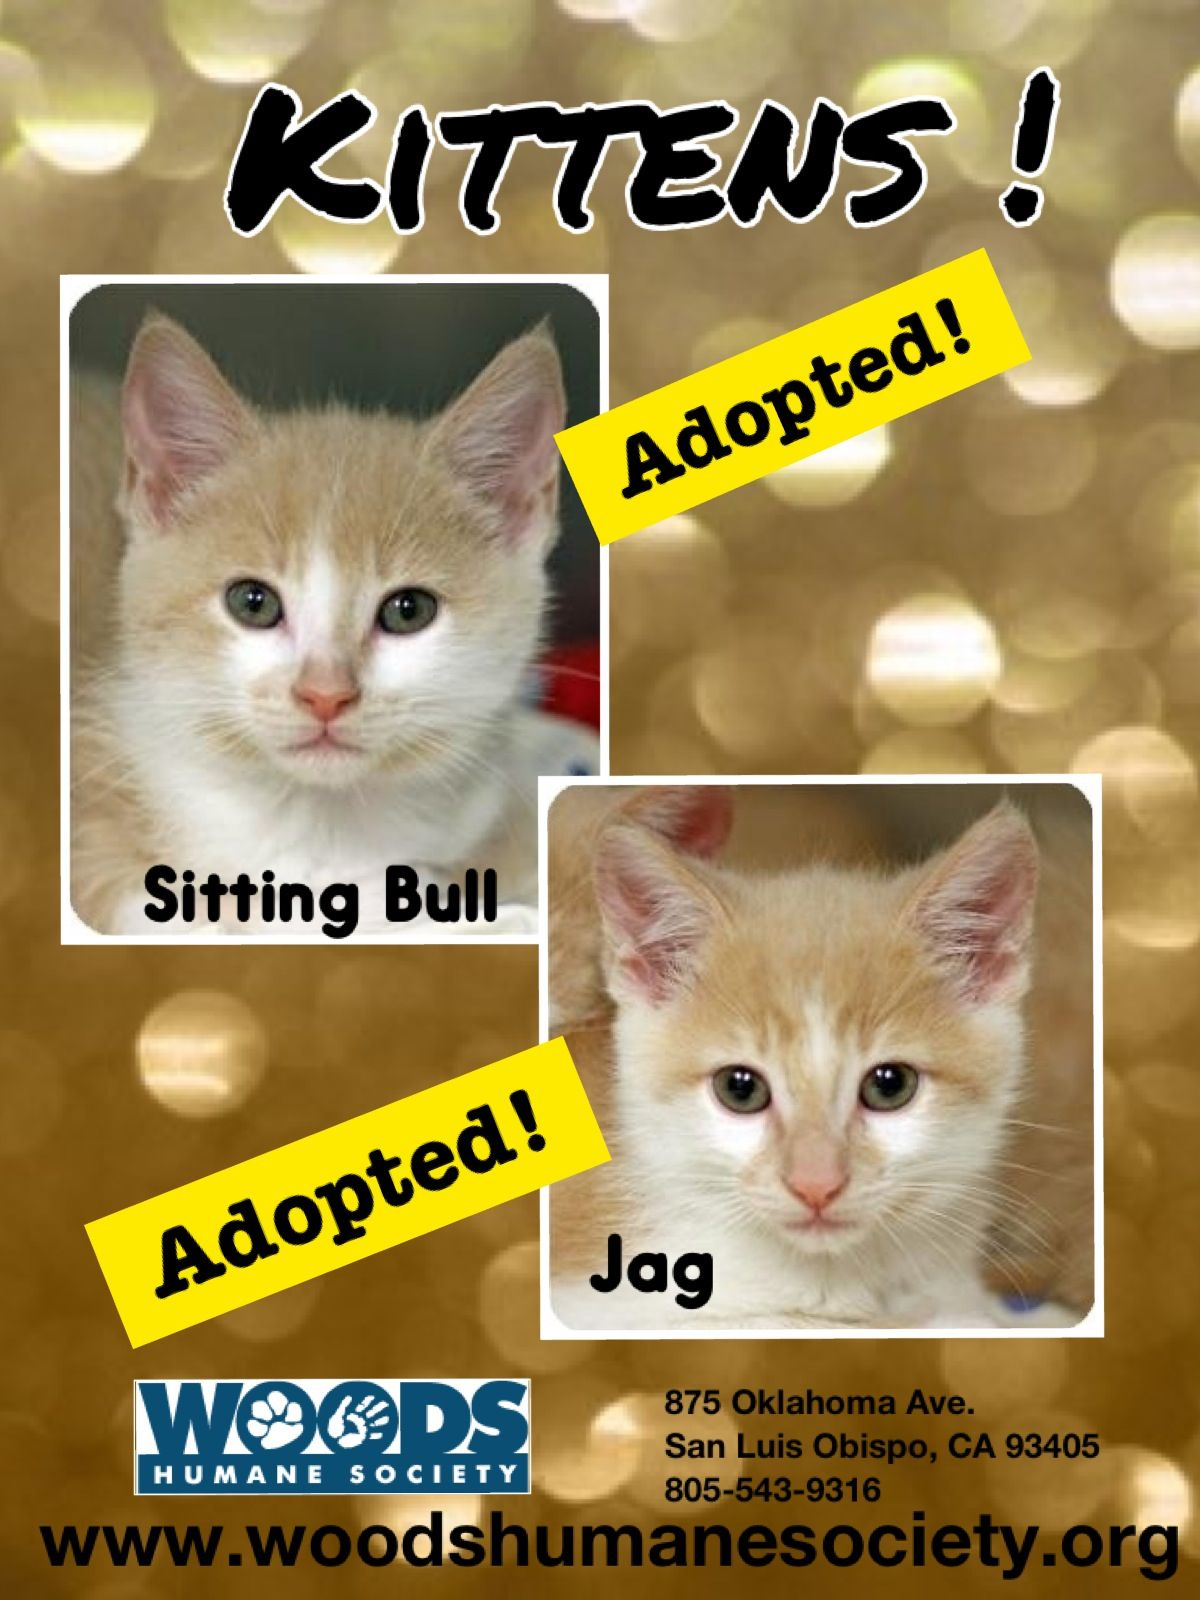 Adopted! Kittens, Humane society, Cat pics